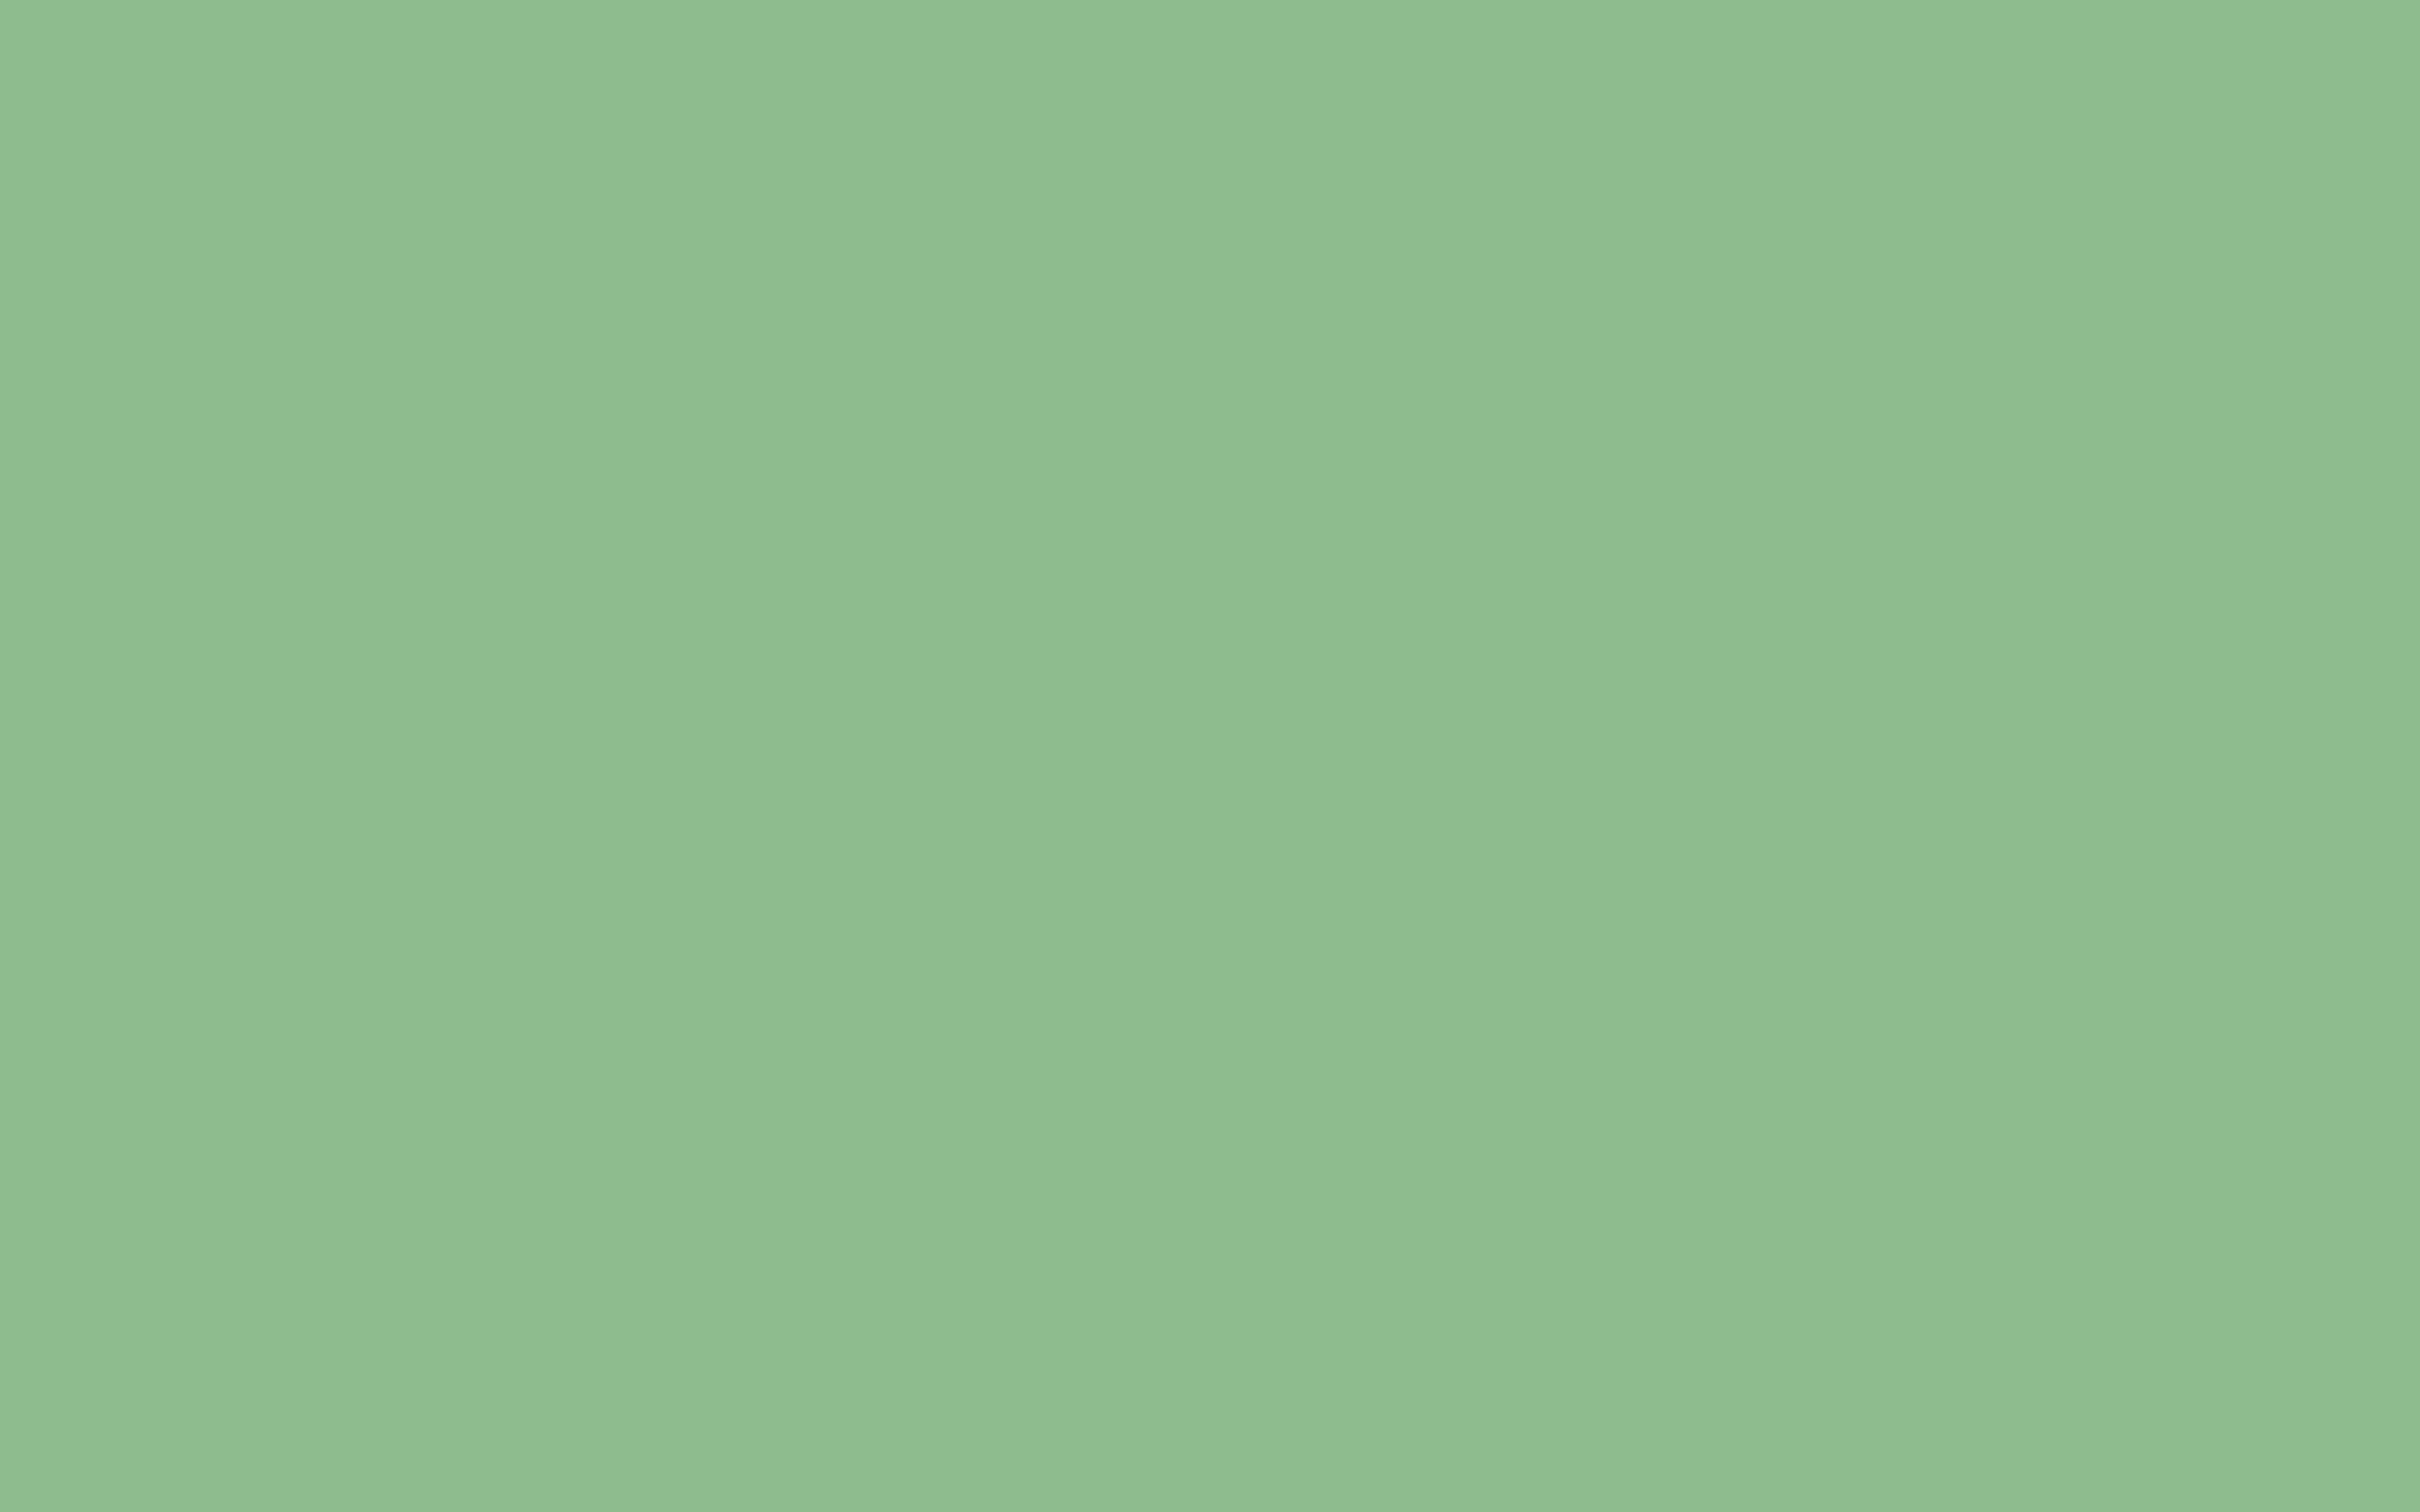 Free 2560x1600 resolution dark sea green solid color - Colour contrast with sea green ...